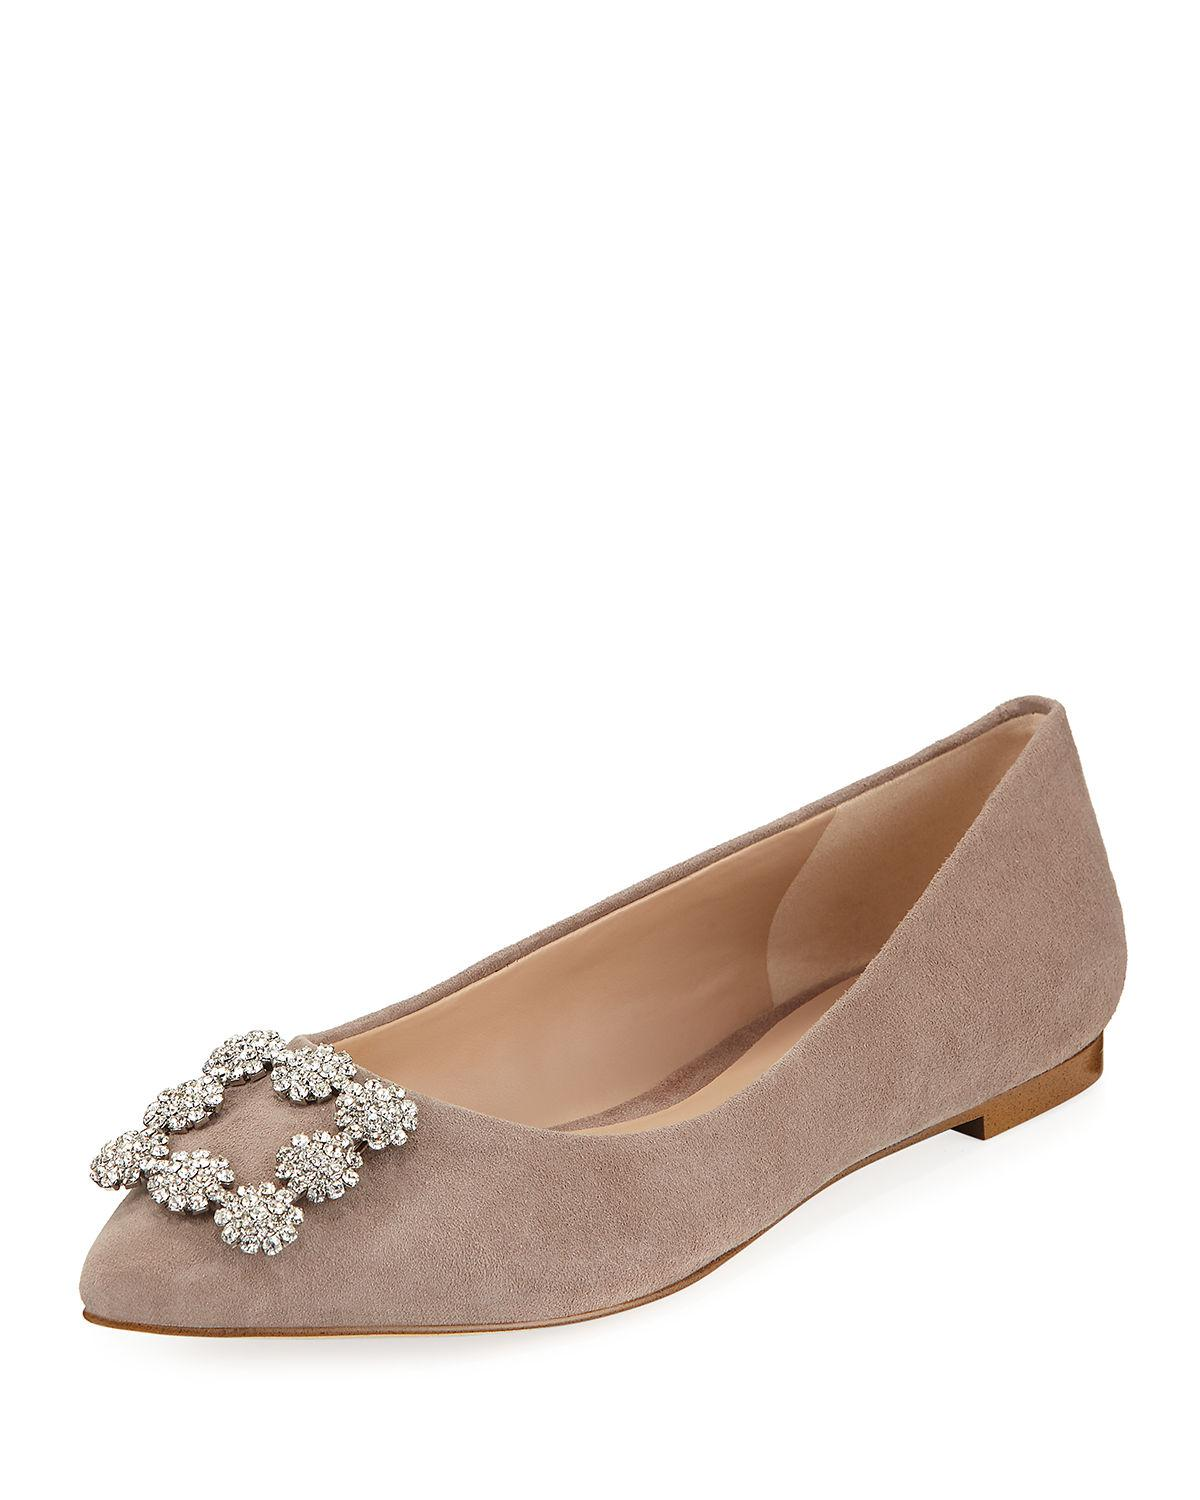 a7a53c448fc0 NARA BALLET FLATS WITH BROOCH. Karl Lagerfeld Paris